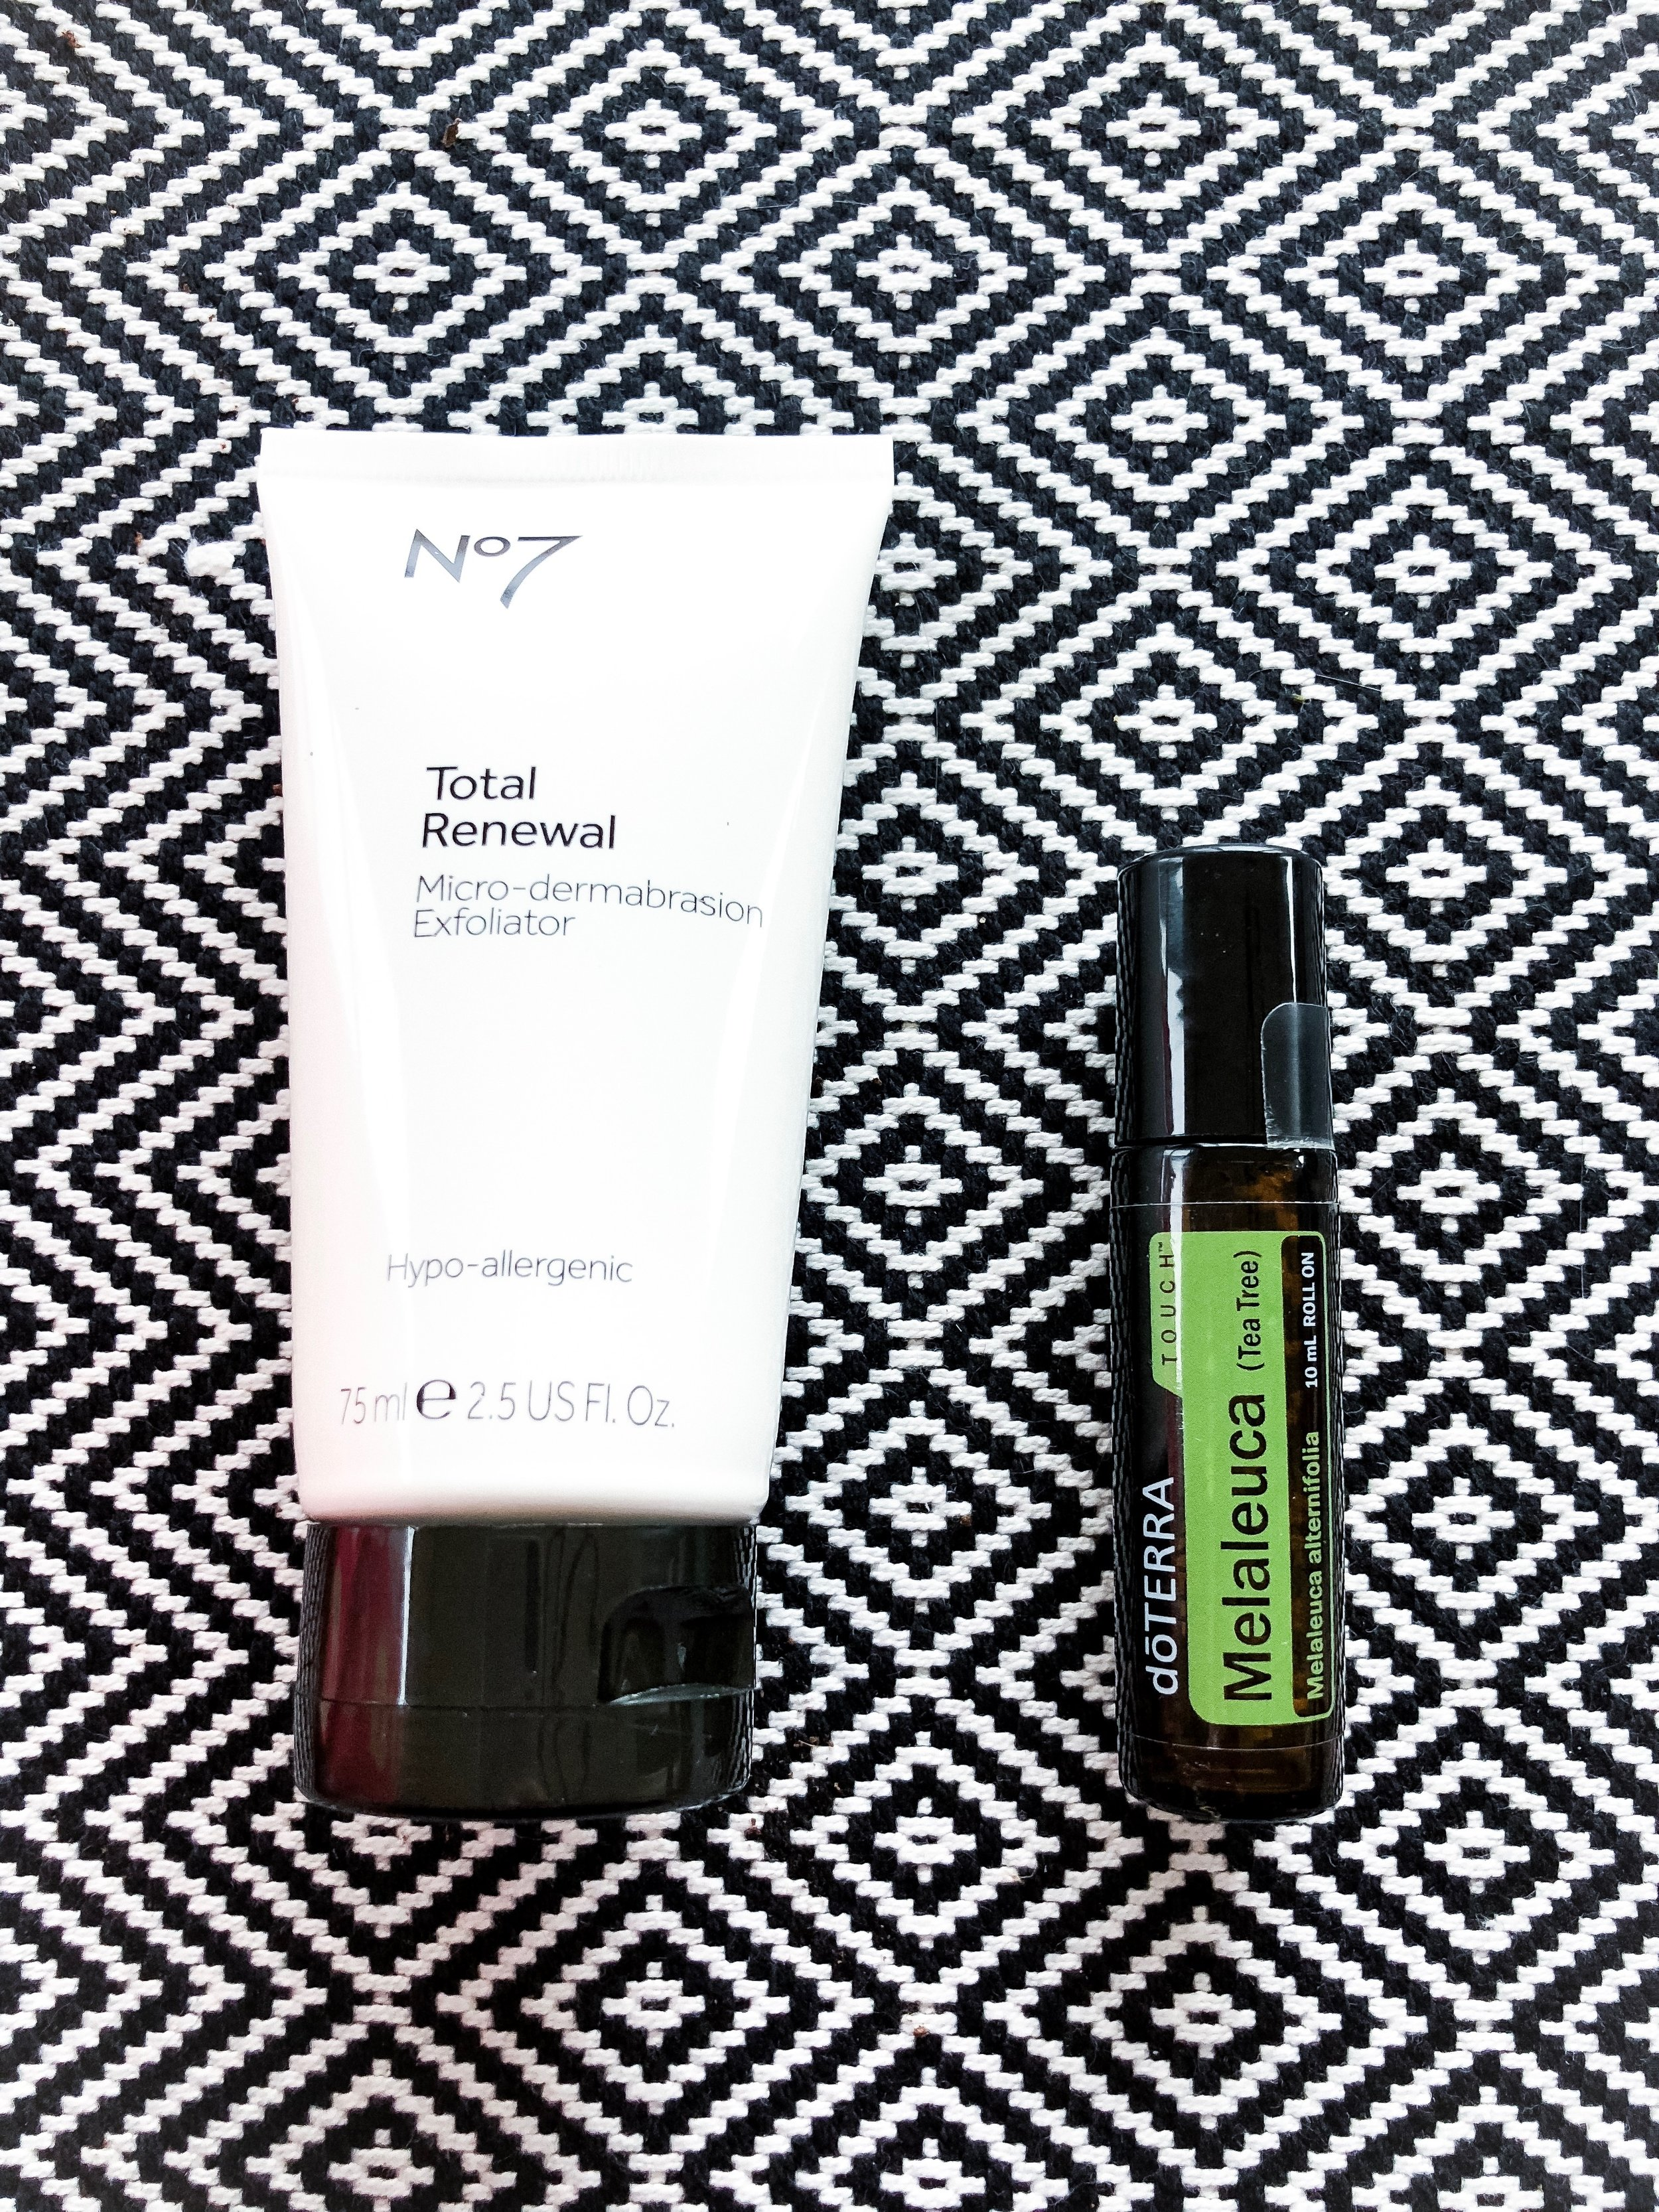 I'm sharing my 10-Minute Makeup Routine over at hprallandco.com!